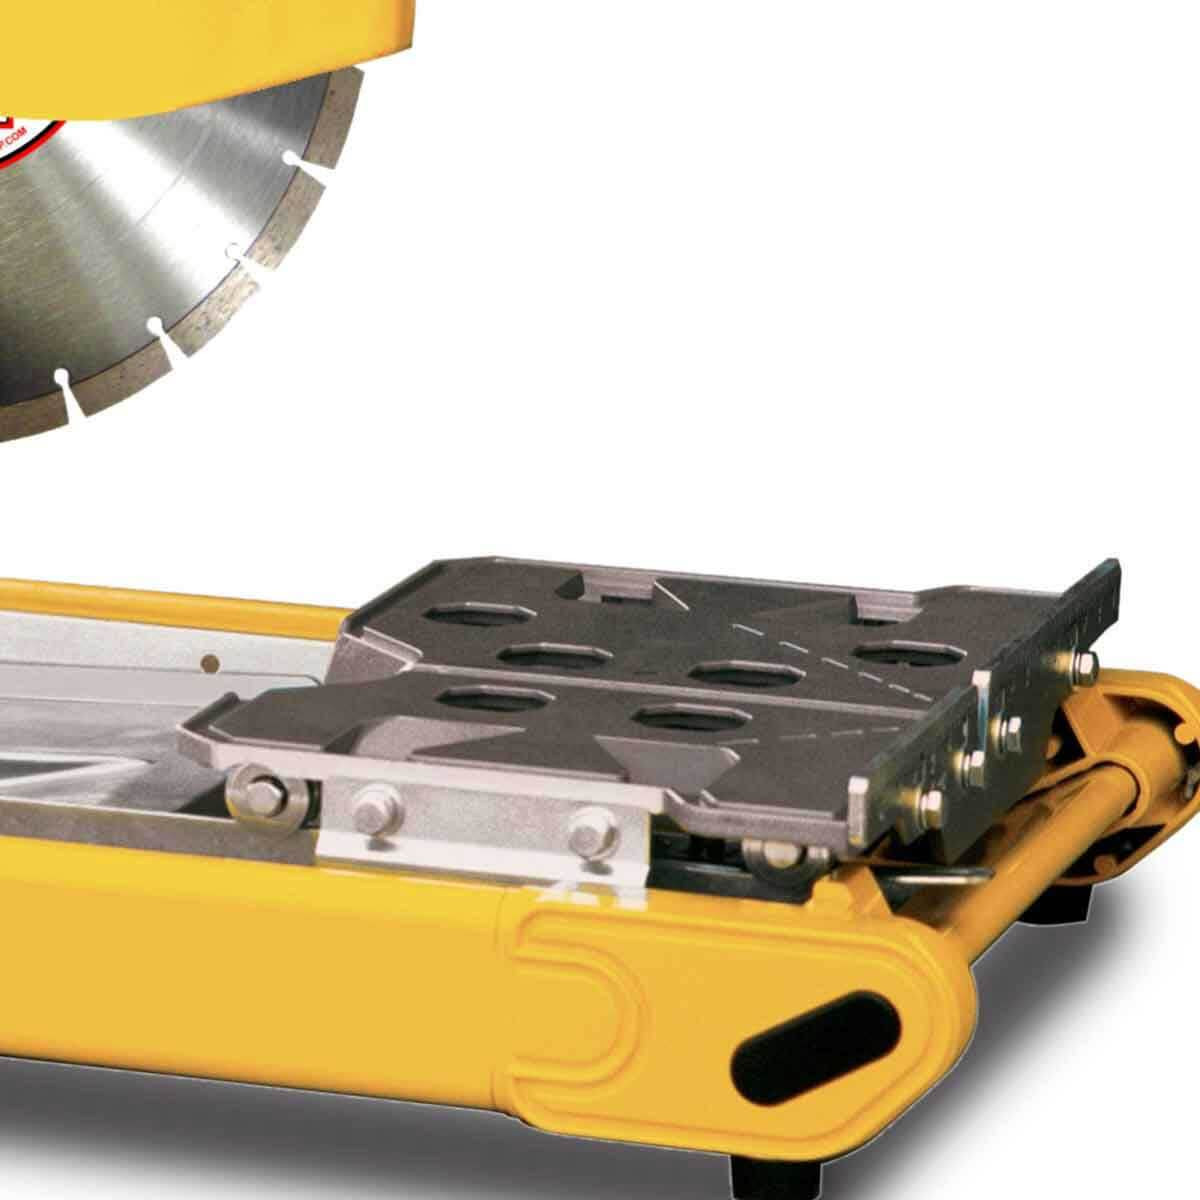 mp3 compact masonry saw tray and slide